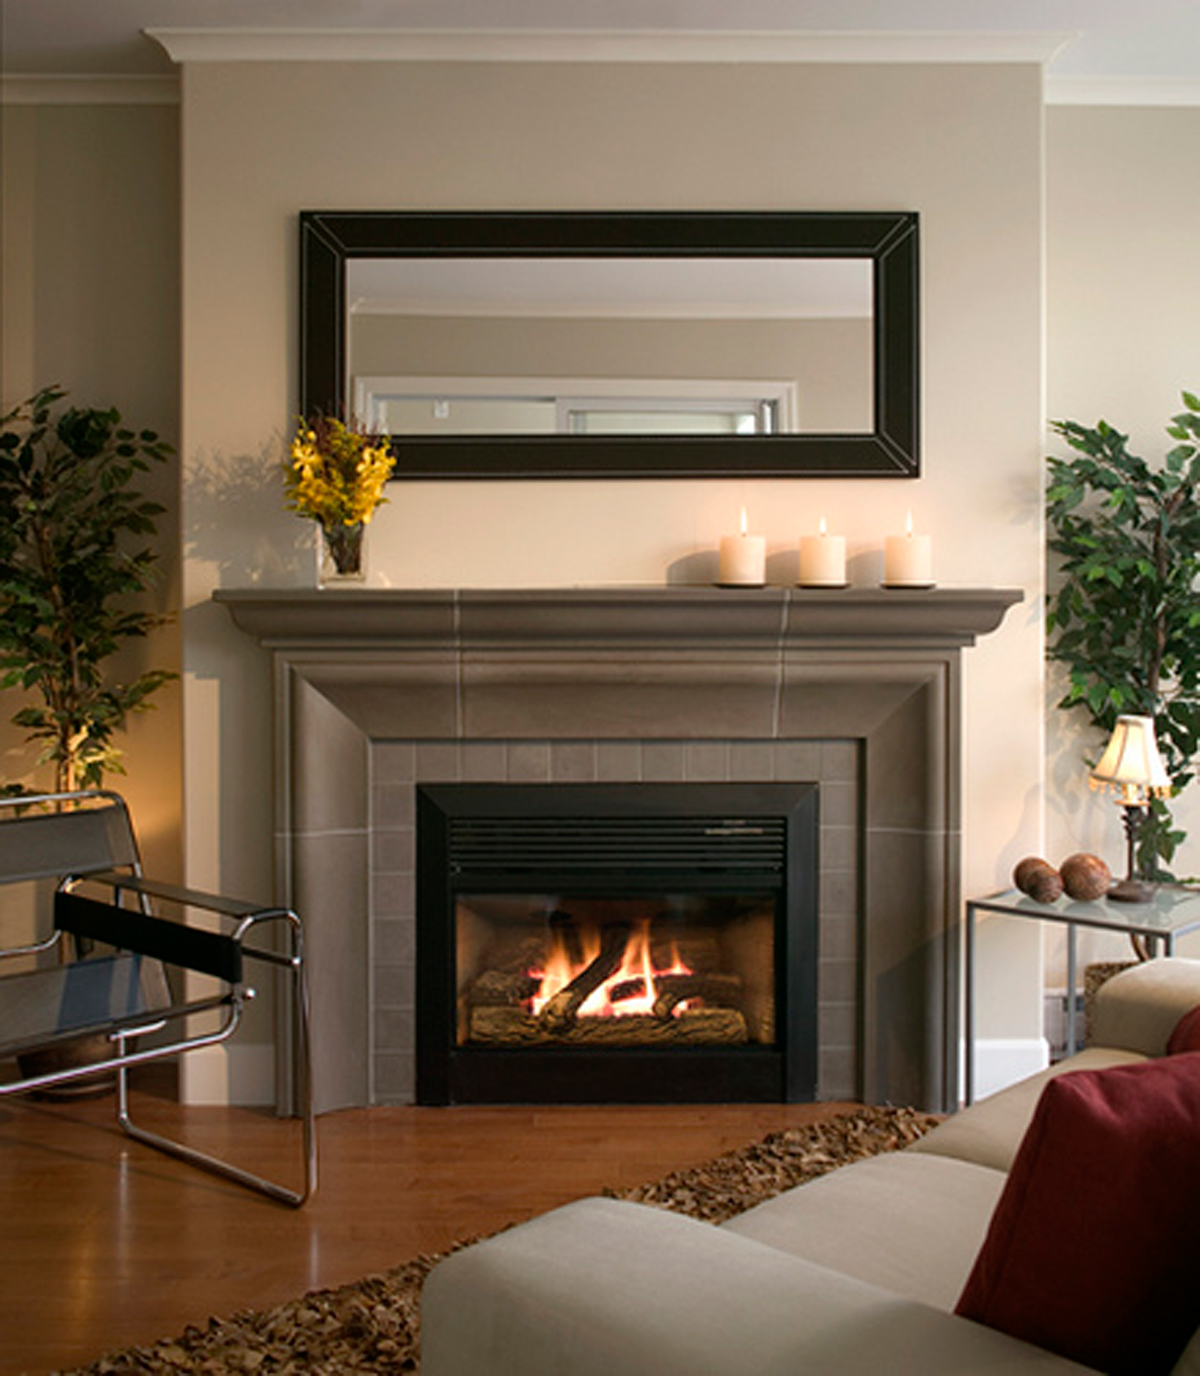 Warm Classic Design Of Fireplace In Living Room With Fireplace Style